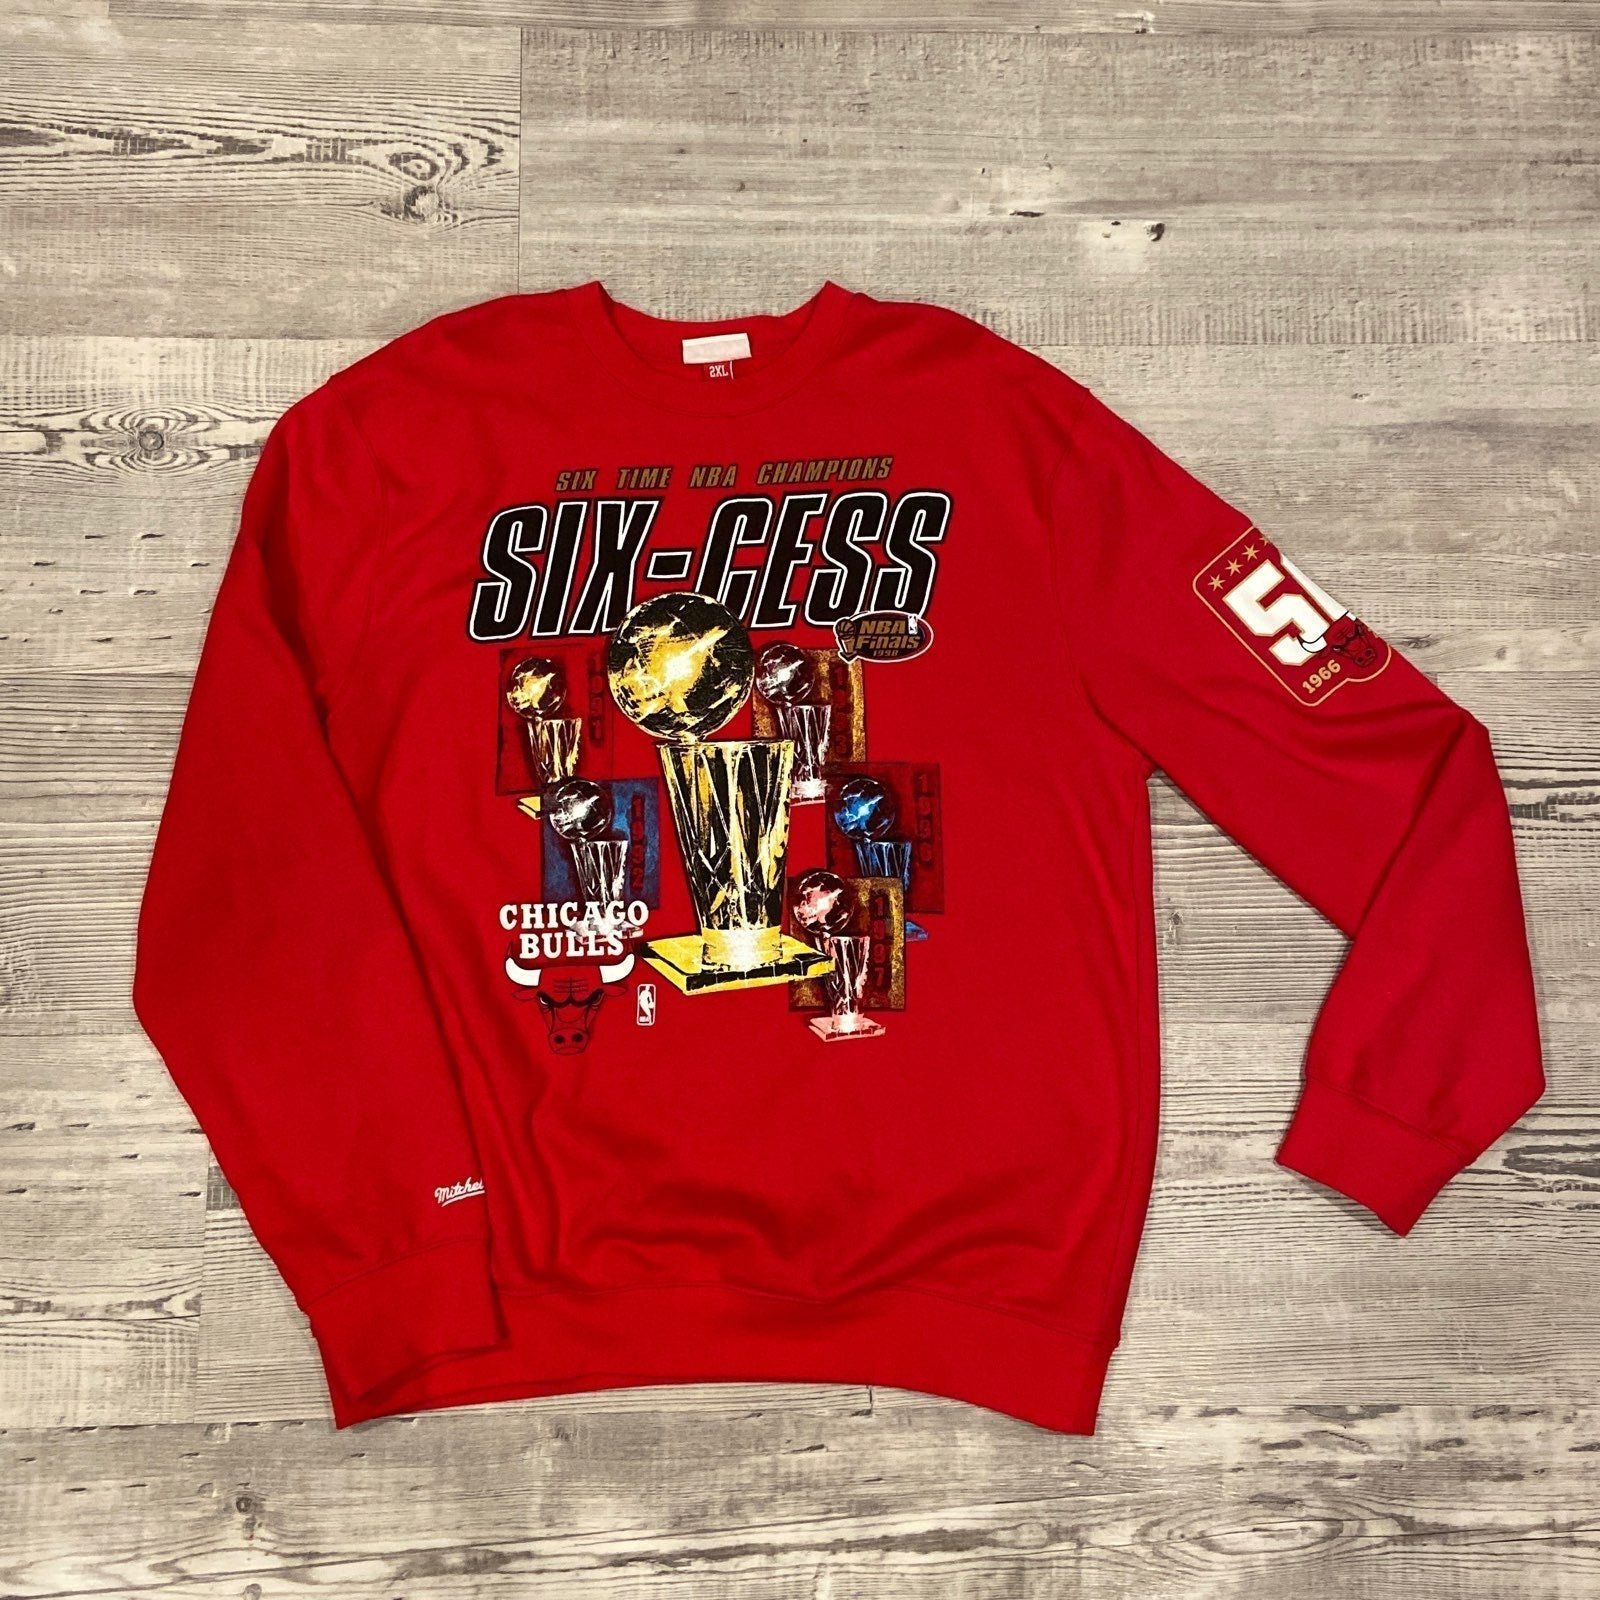 Chicago Bulls XL Sweater